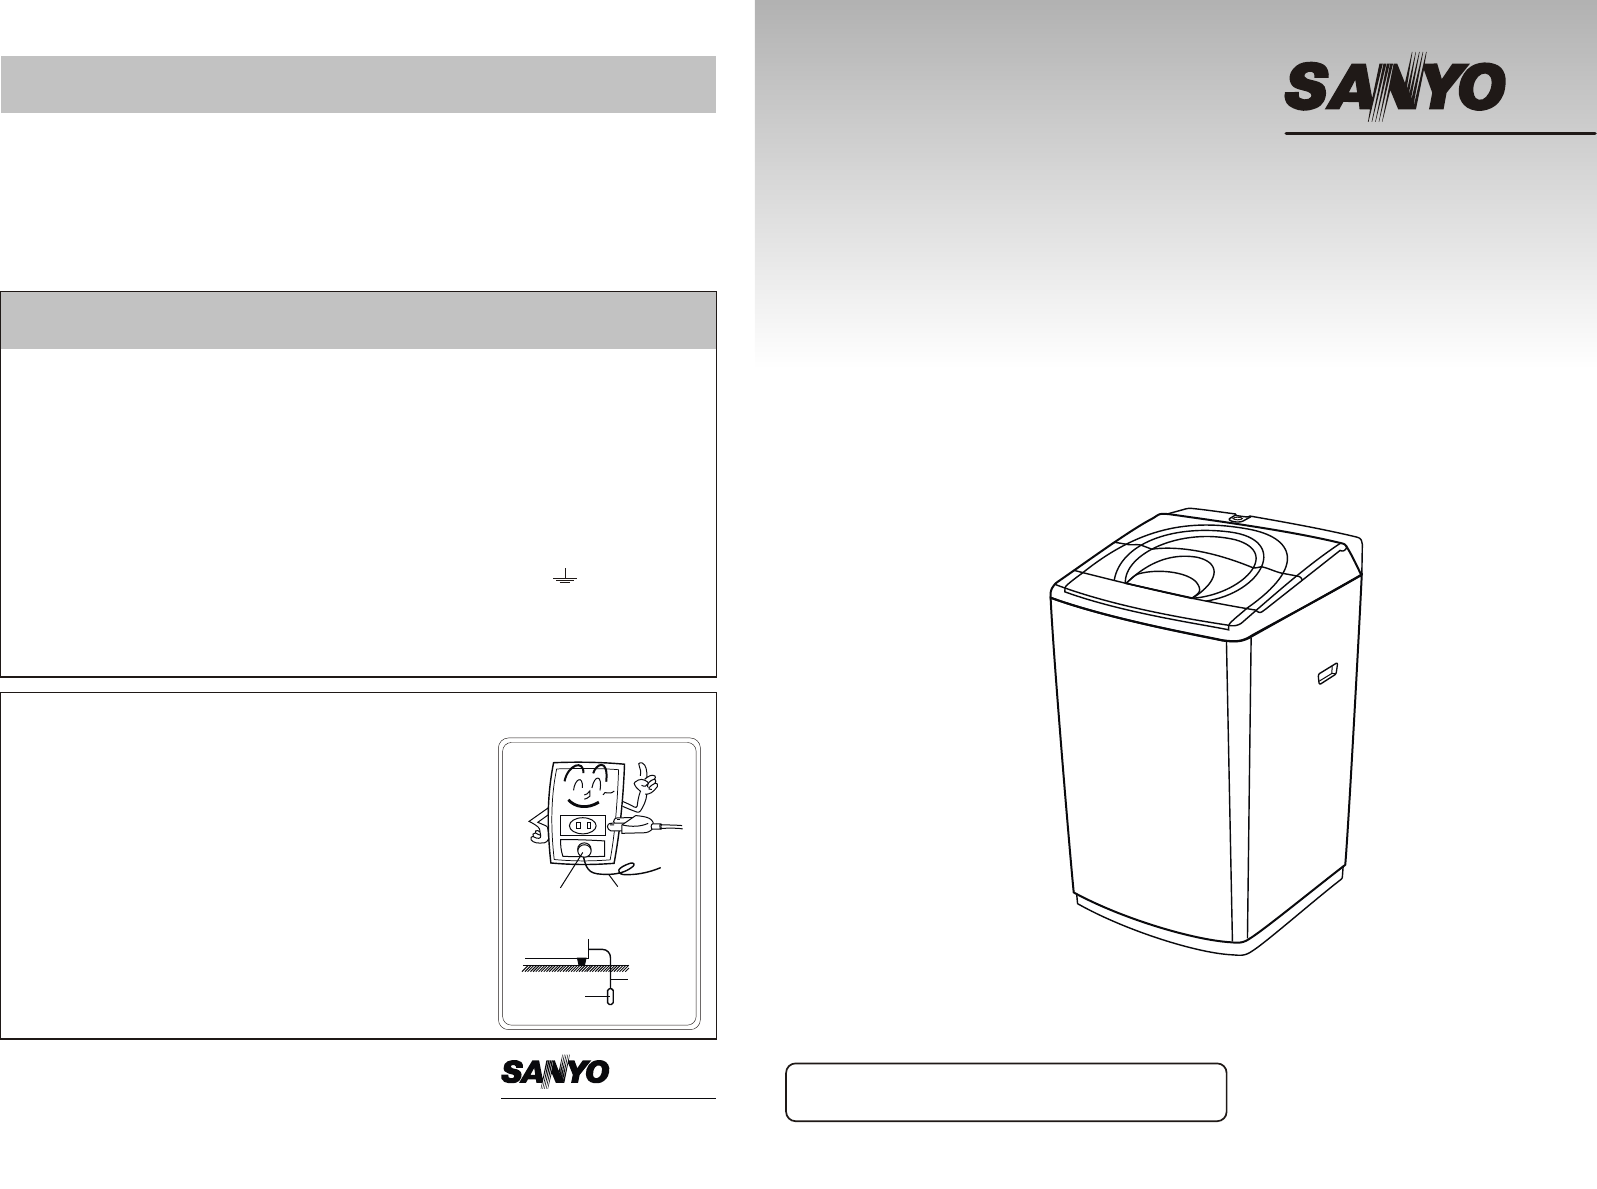 sanyo washer asw a85ht user guide manualsonline com sanyo manuals online sanyo manuals download